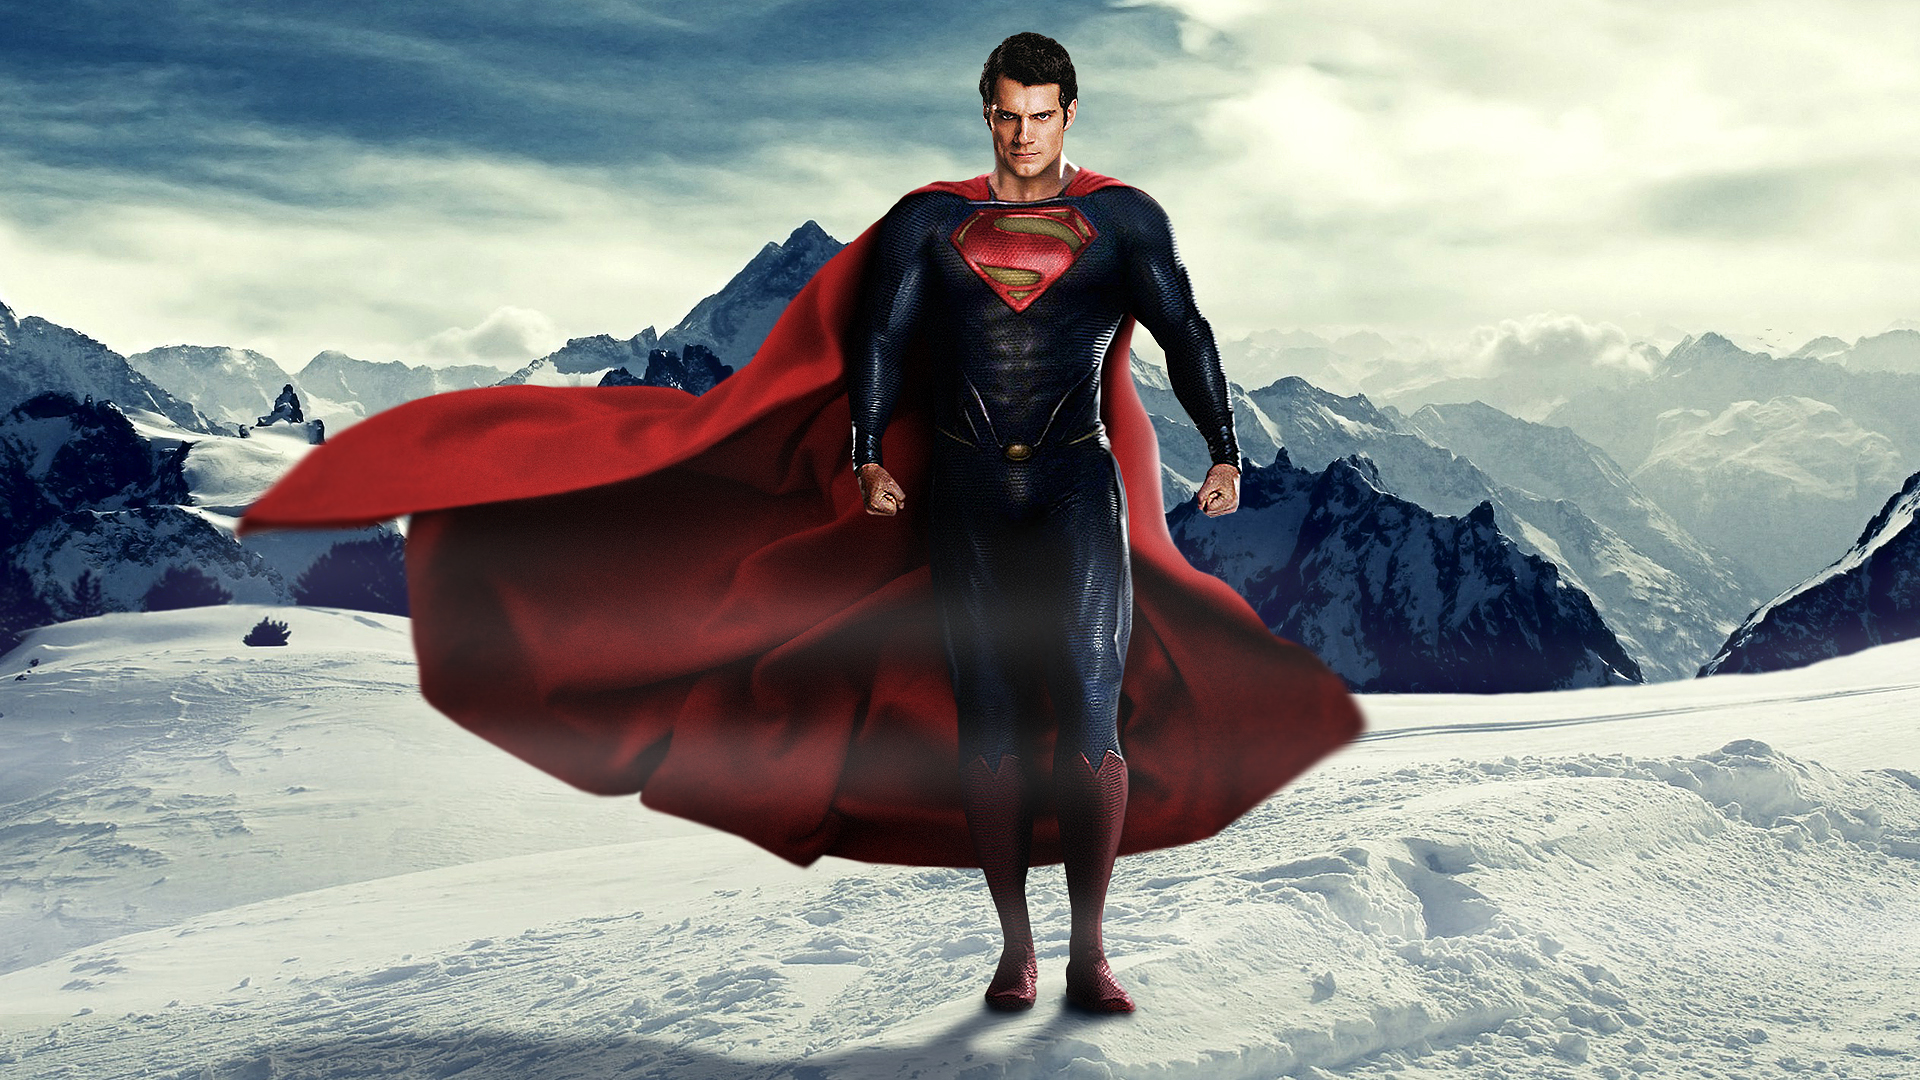 Man of Steel   Superman Wallpaper 02 by LoganChico 1920x1080